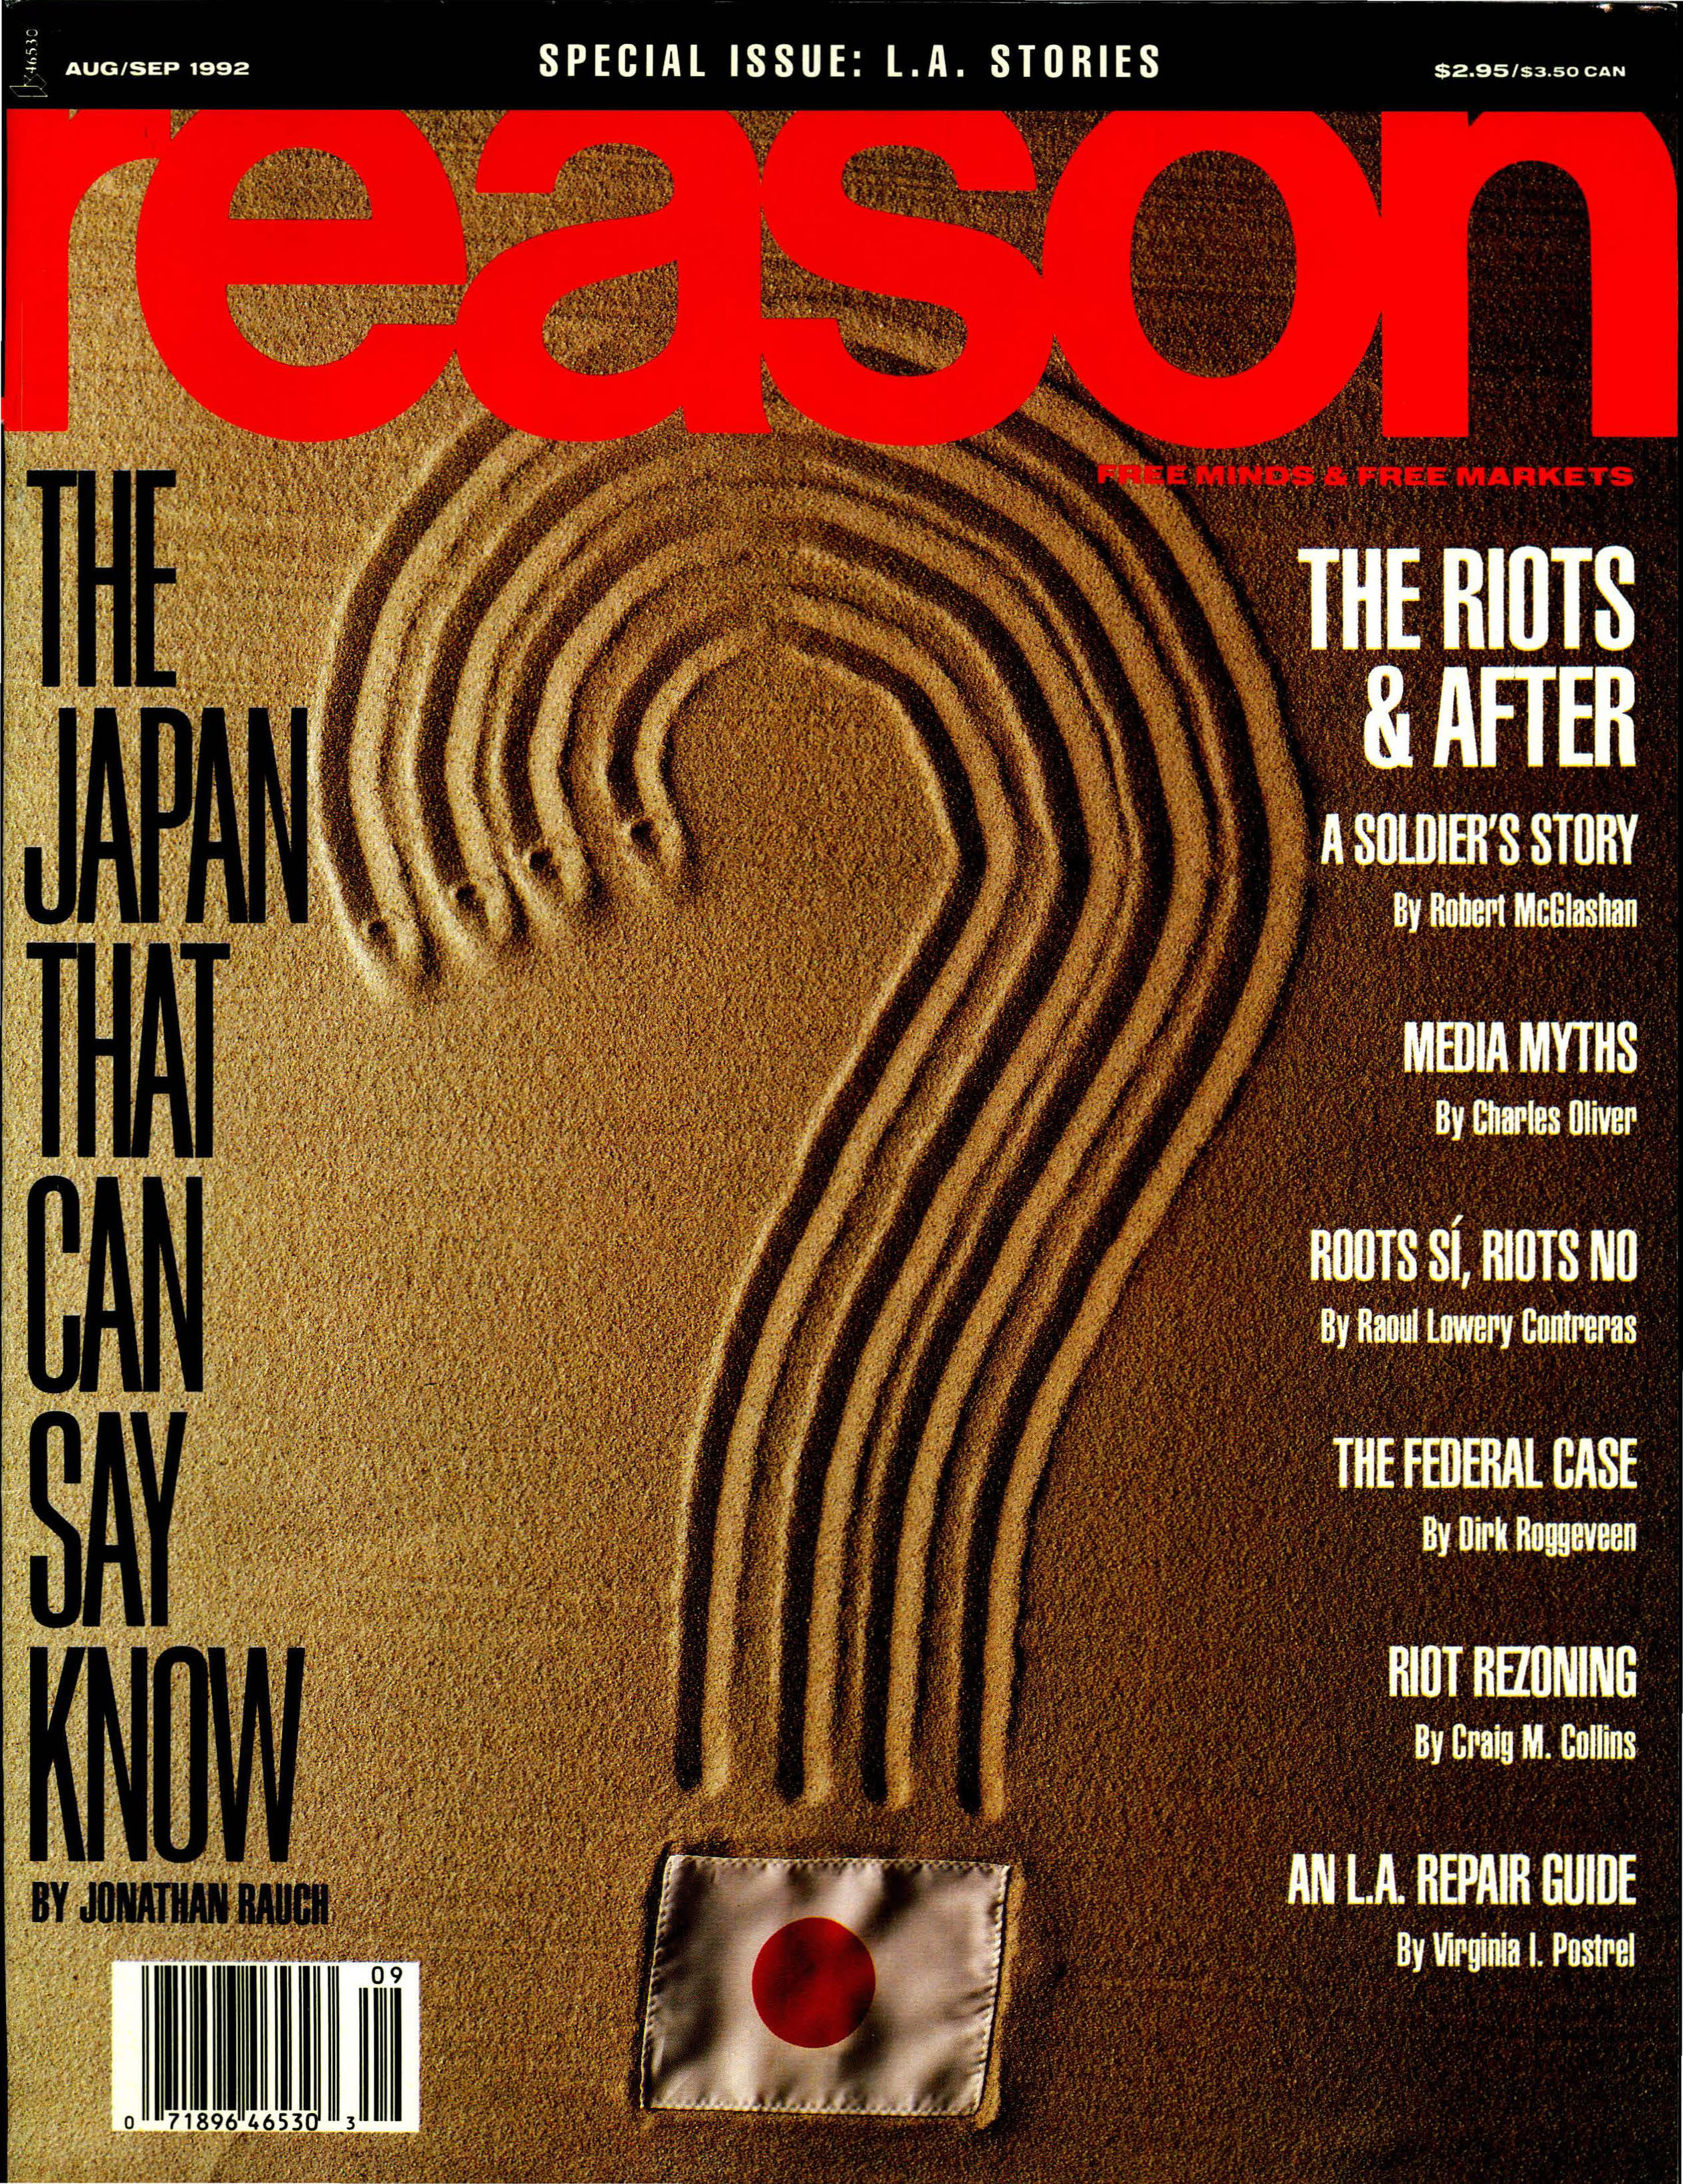 Reason Magazine, August/September 1992 cover image